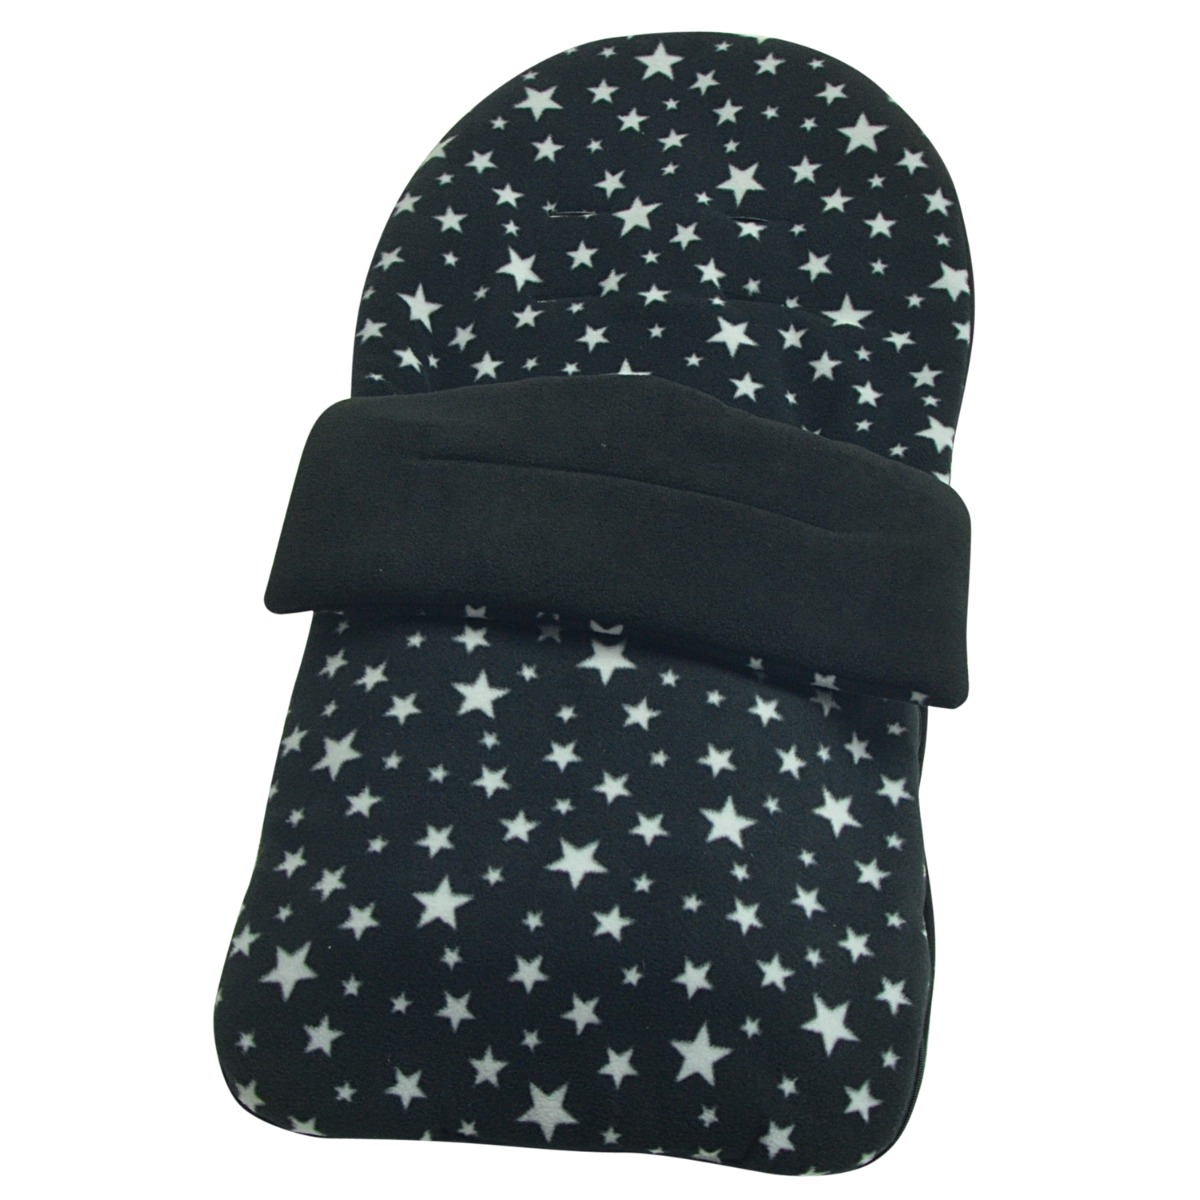 Fleece Footmuff Grey Star Cosy Toes Compatible with My Babiie Mb300